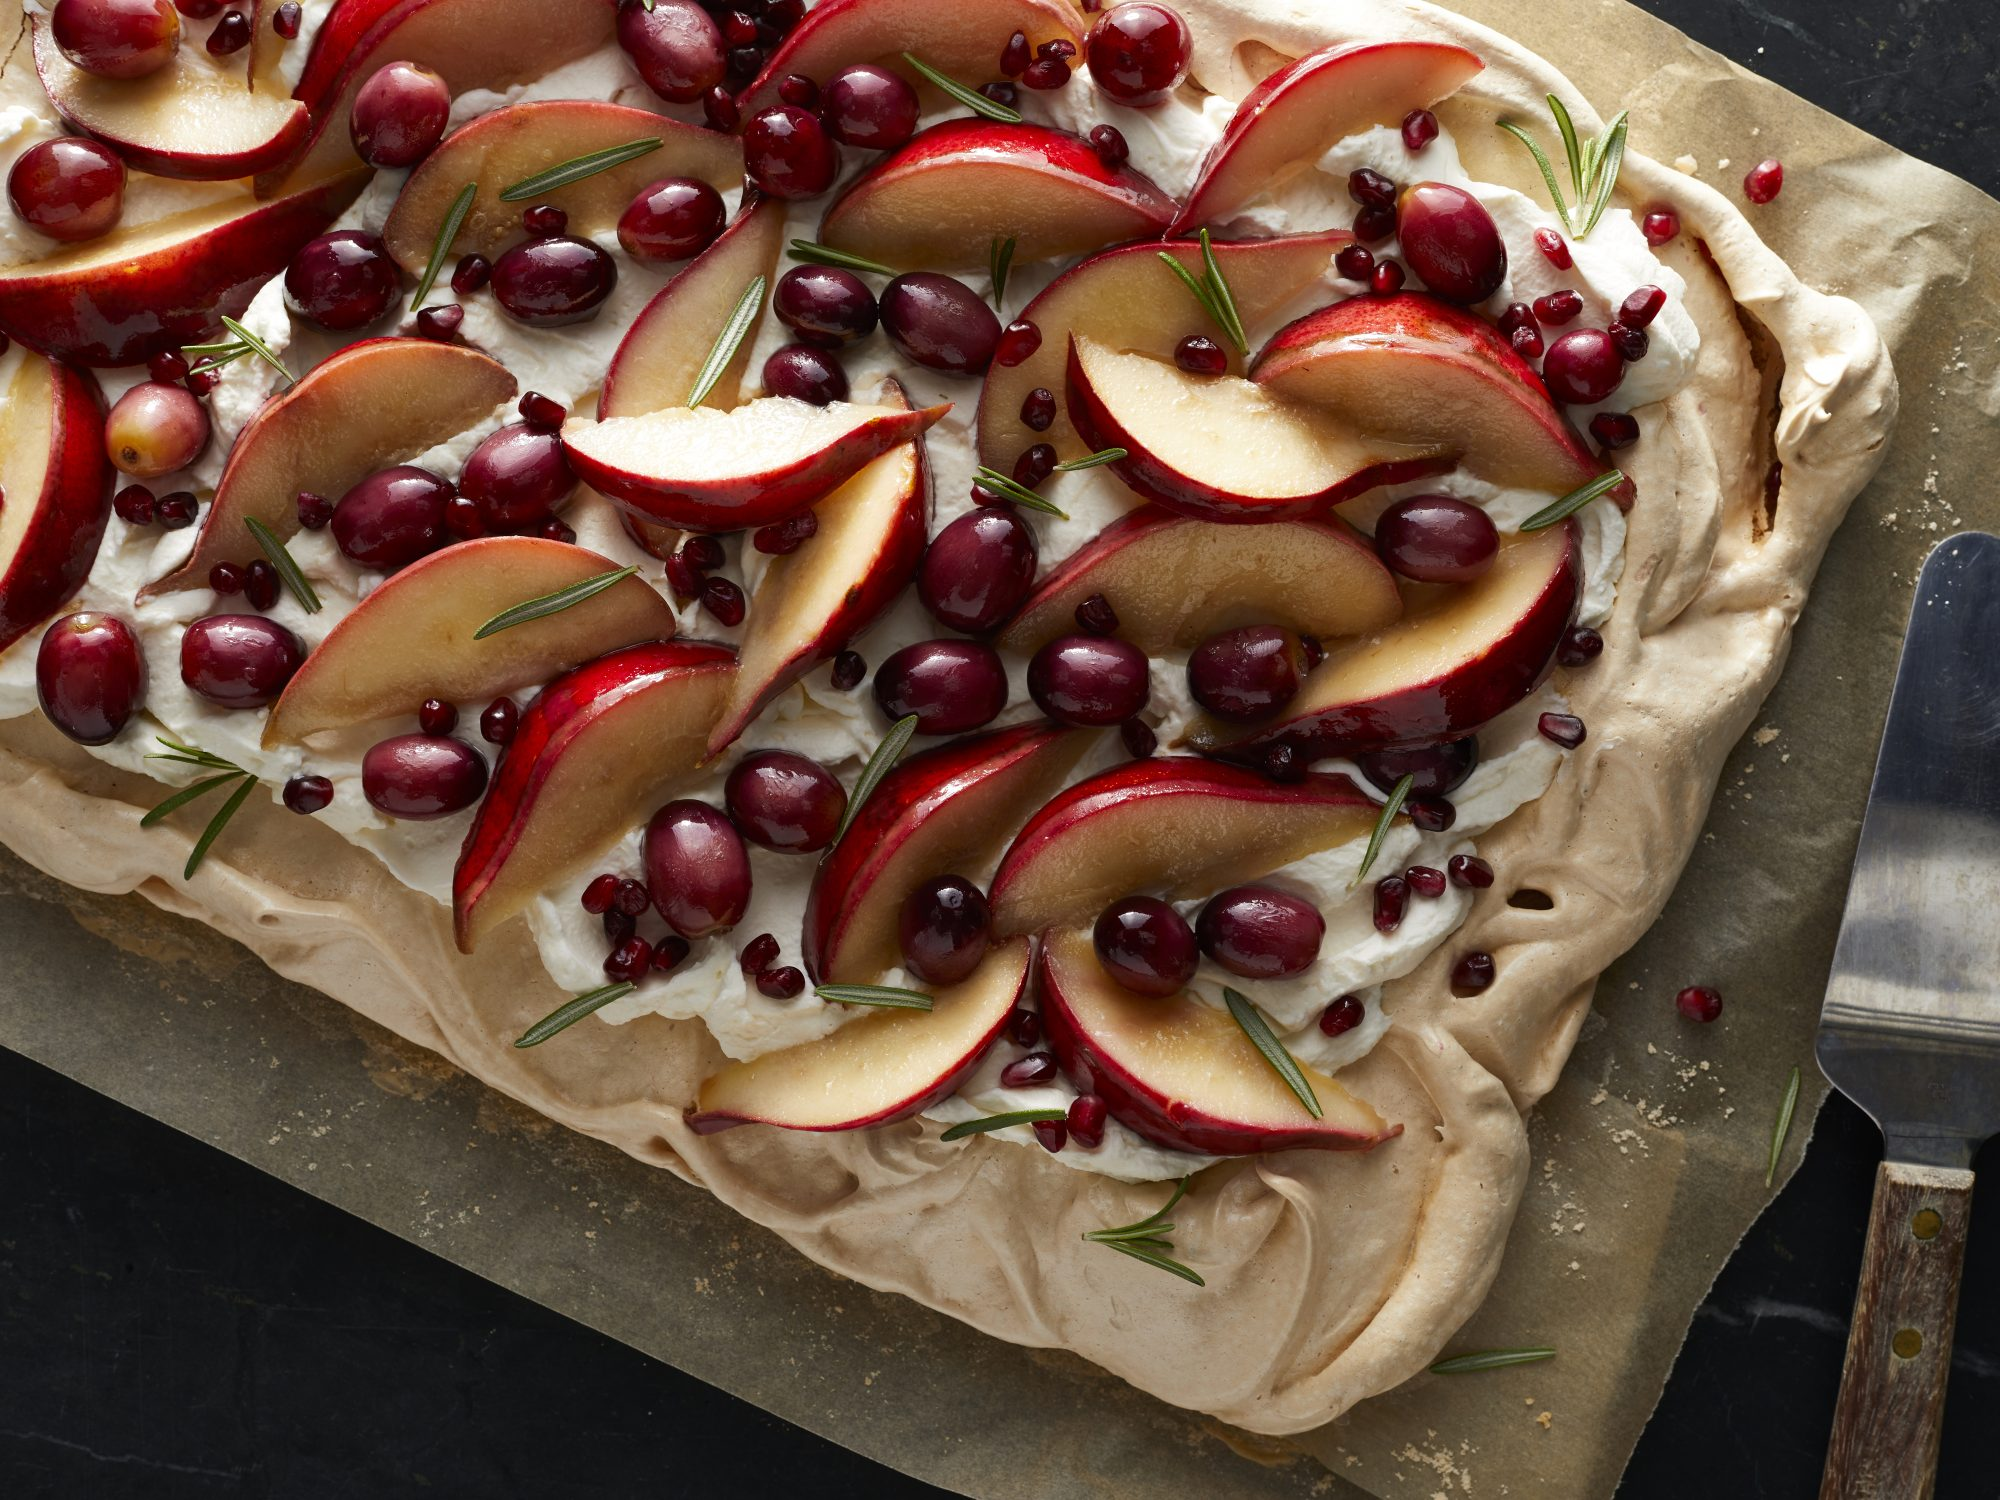 Spiced Pavlova with Roasted Pears and Grapes